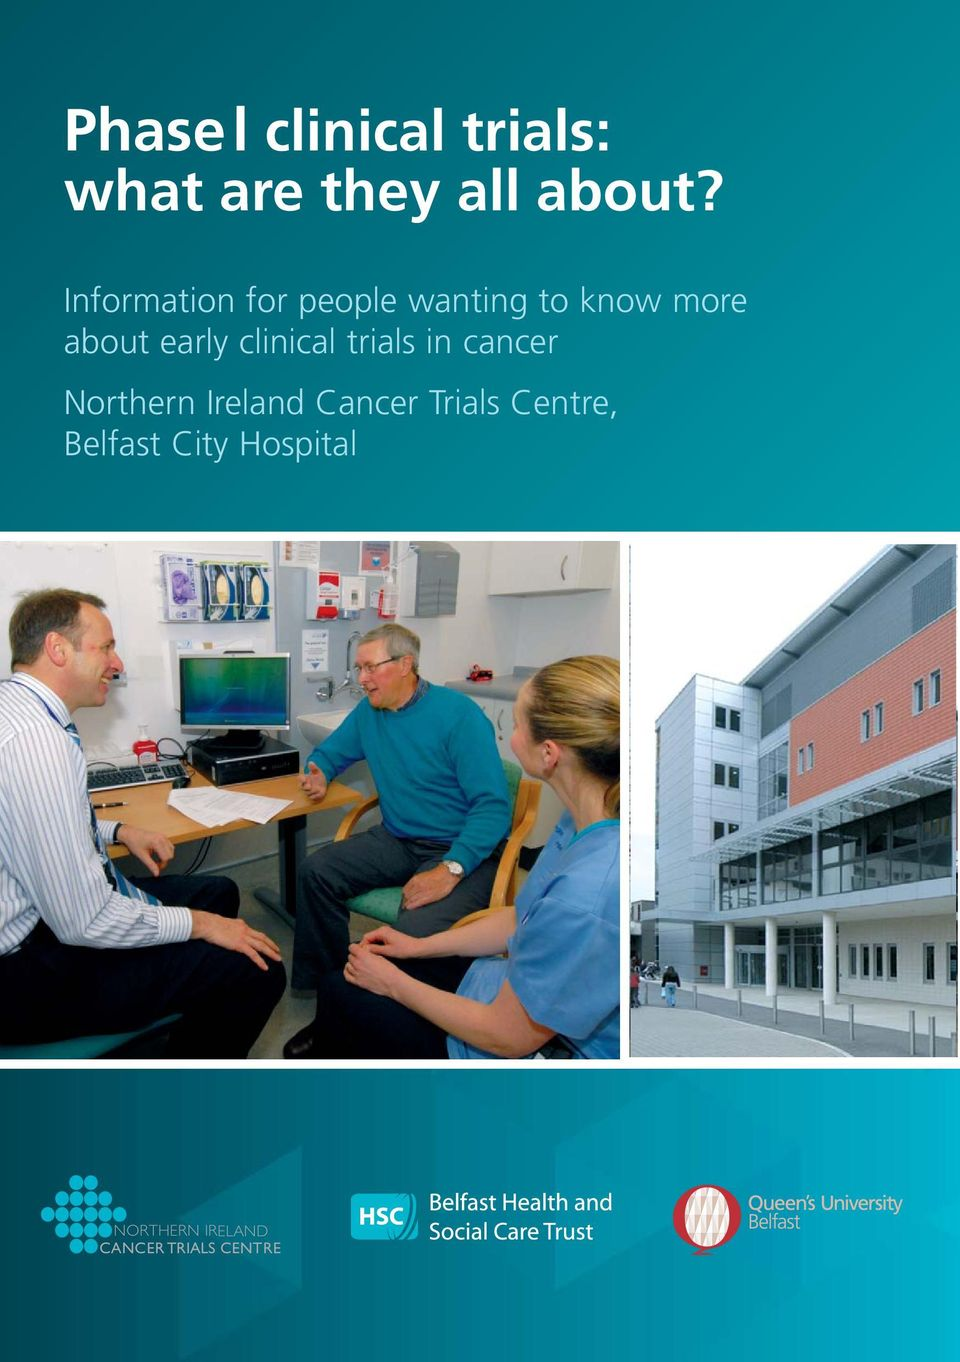 about early clinical trials in cancer, Belfast